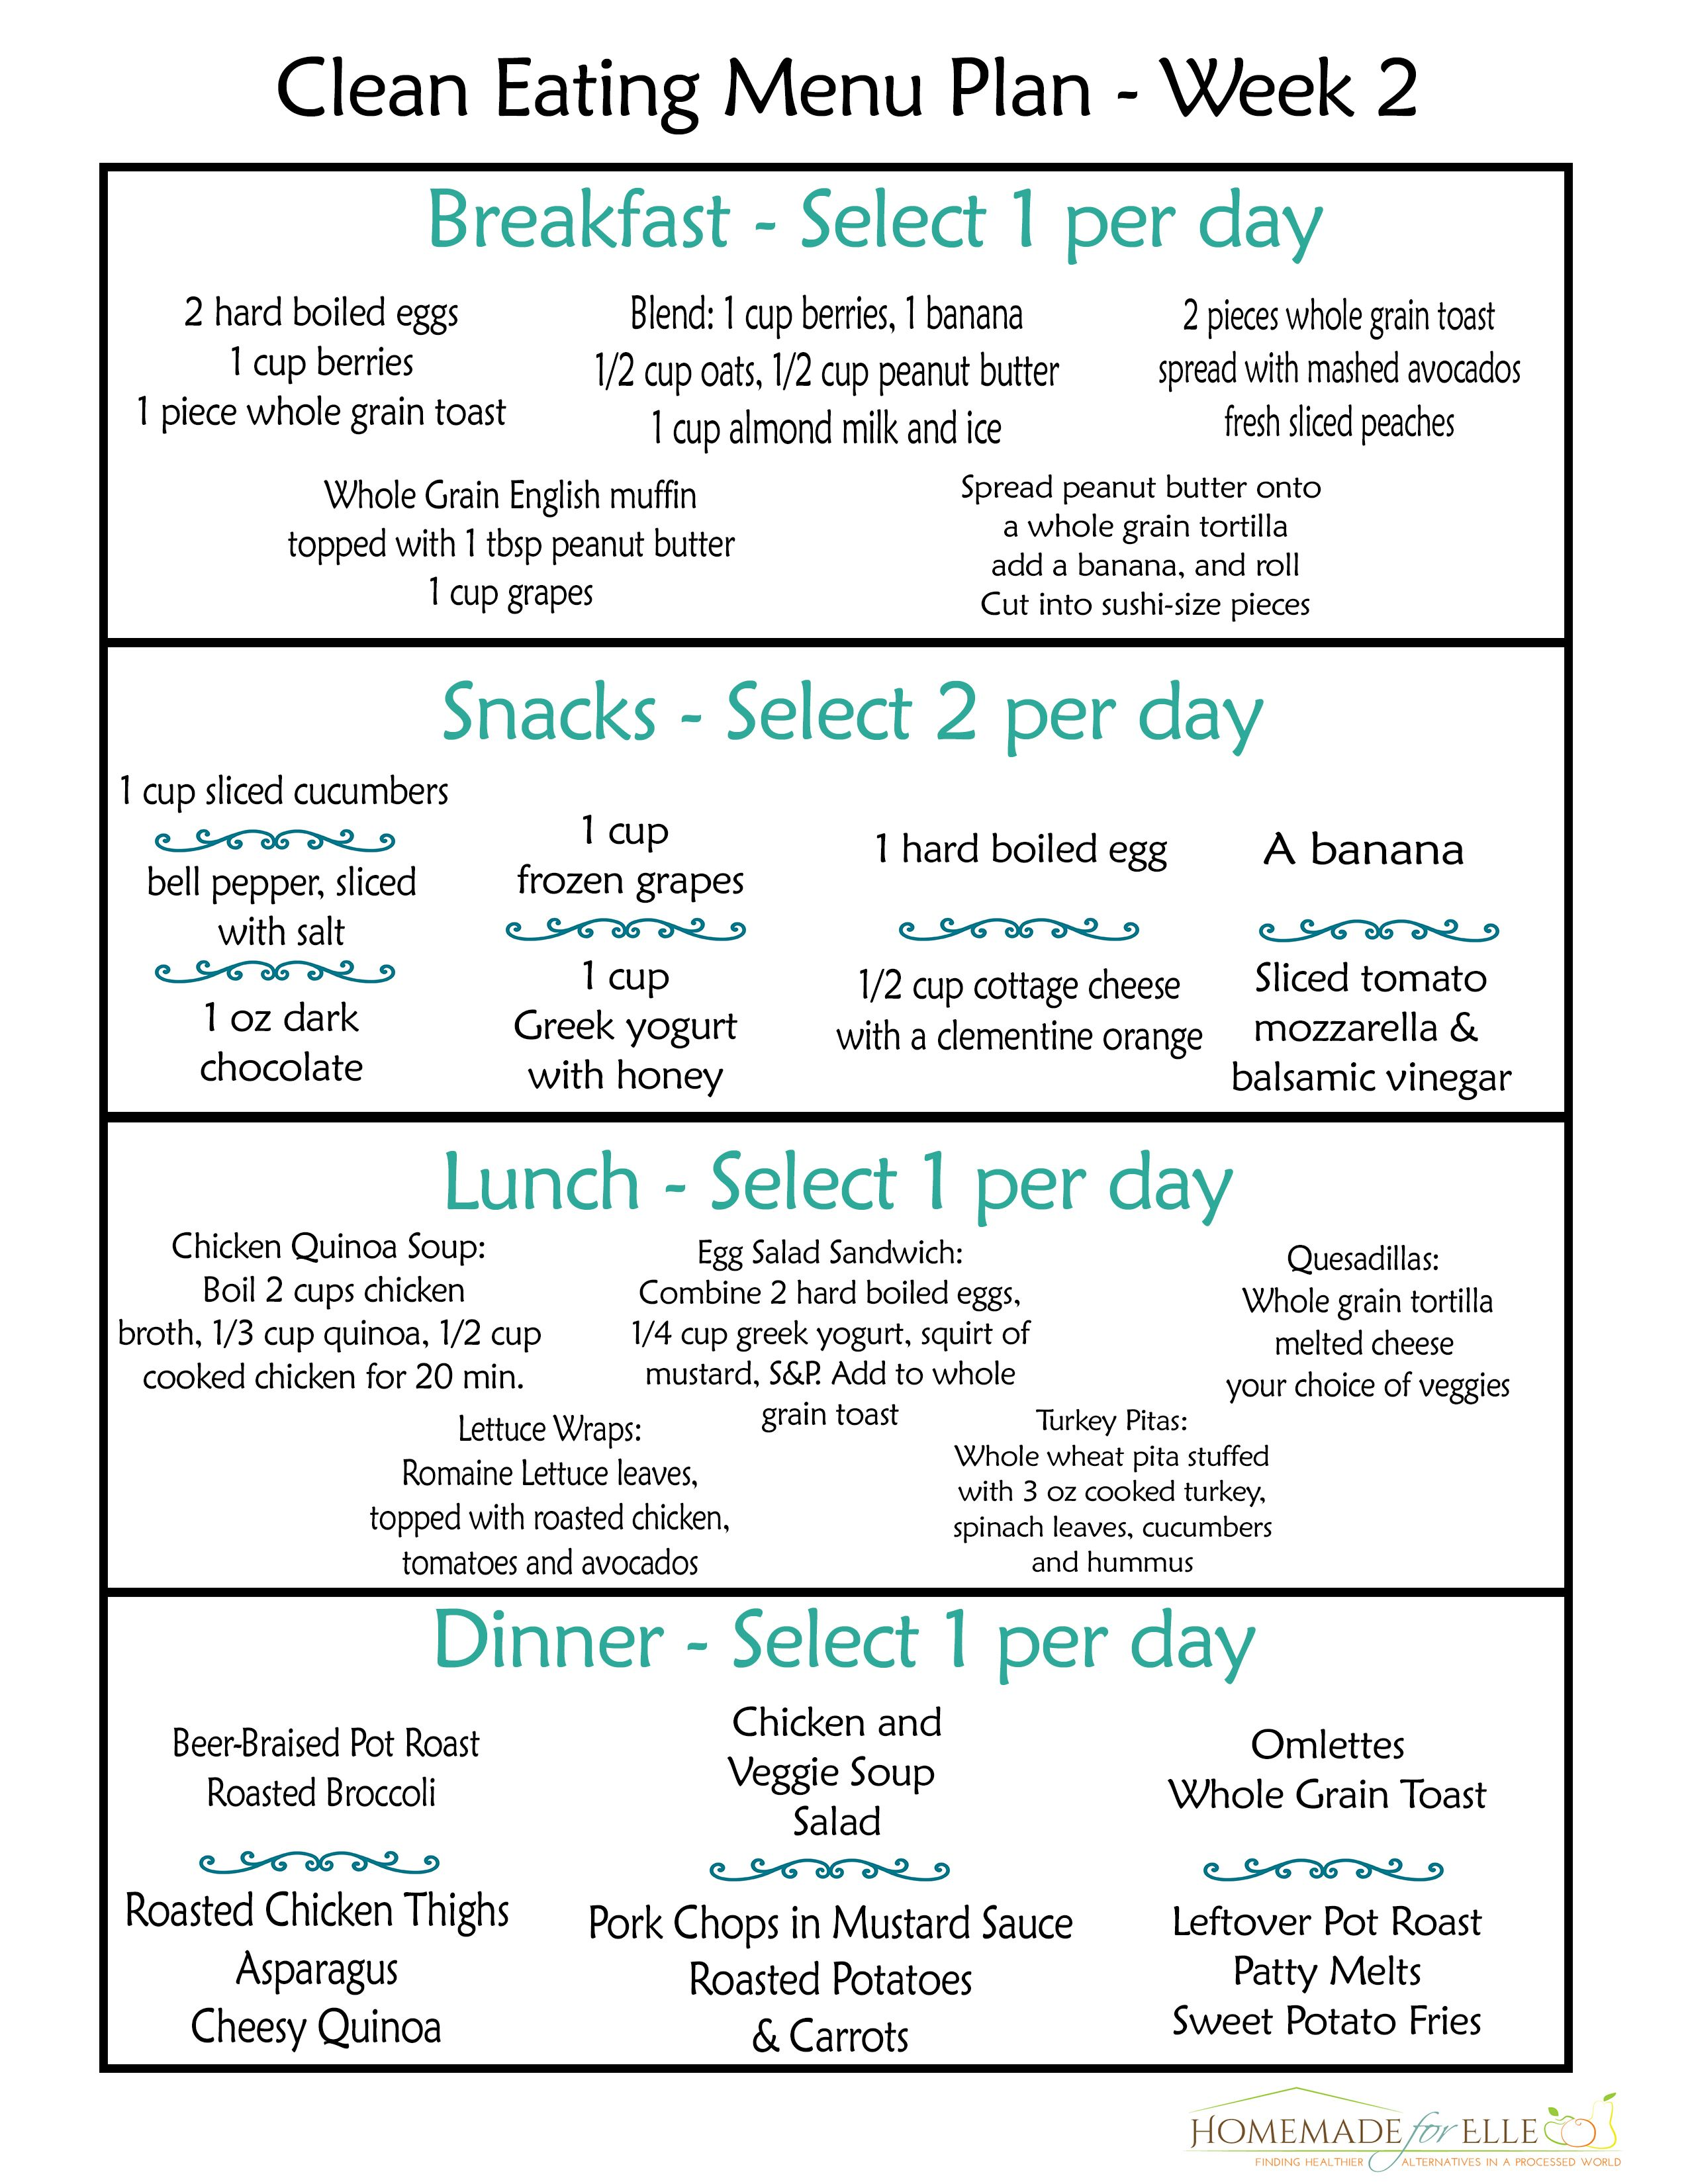 Clean Eating 7 Day Meal Plan Free clean eating meal plan